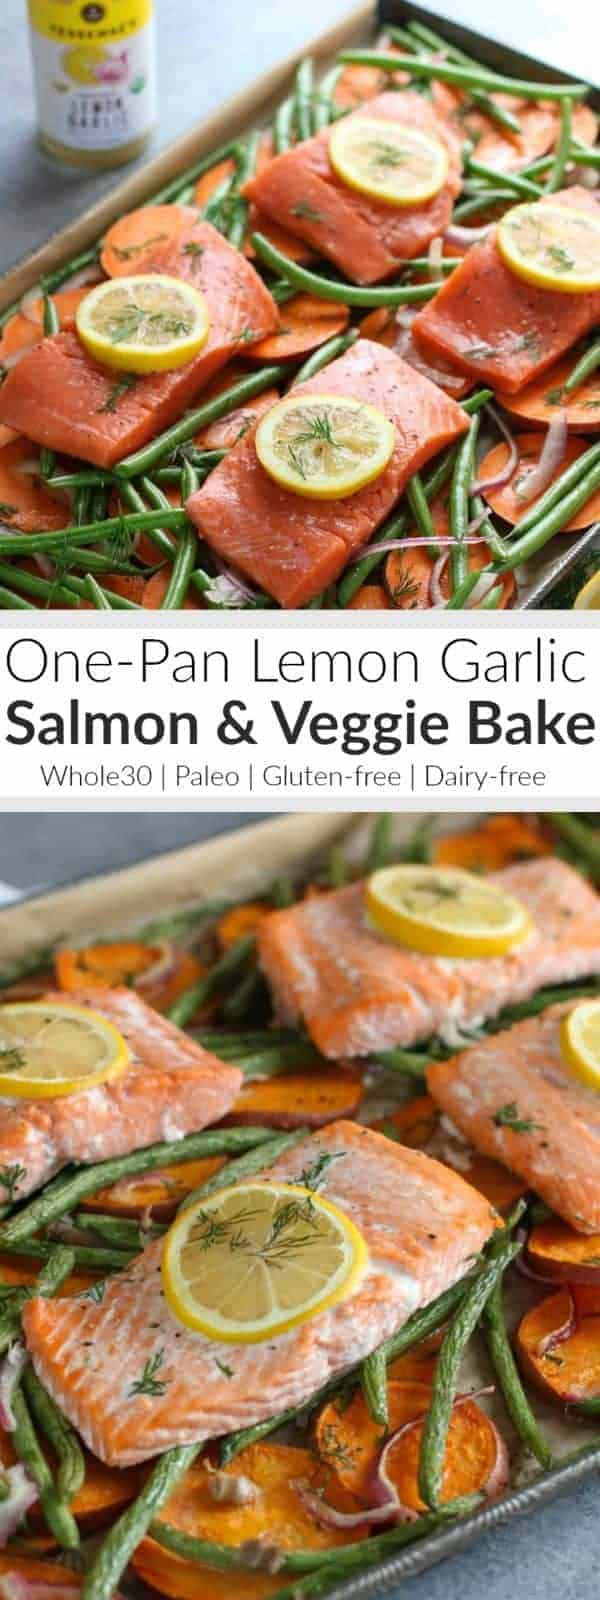 One Pan Salmon & Veggie Bake   Make life easier this week with our One-Pan Salmon and Veggie Bake. Just one pan and minimal clean up! Whole30   Gluten-free   Dairy-free   Paleo   https://therealfoodrds.com/one-pan-salmon-and-veggie-bake/